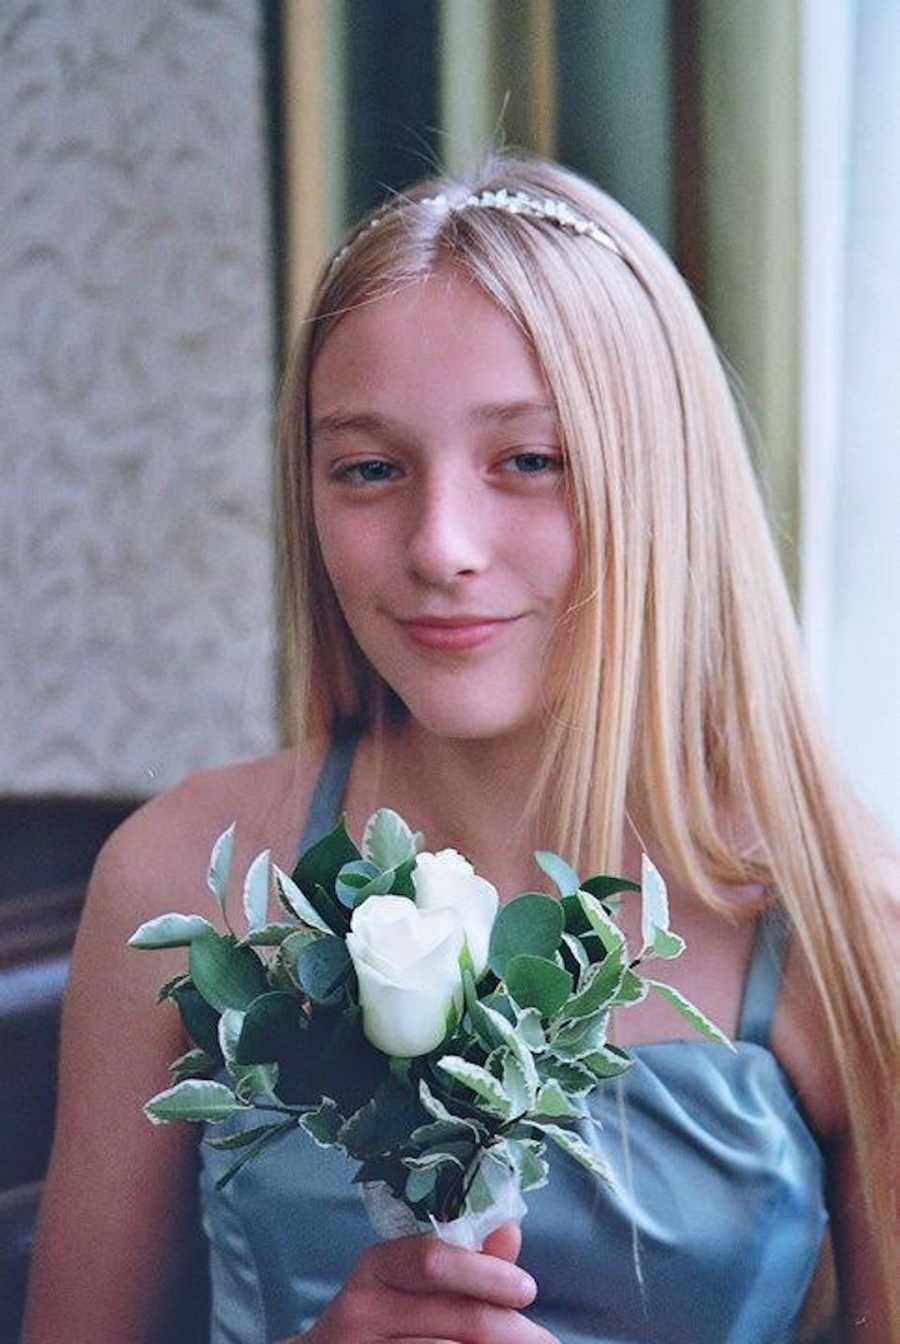 young girl smiling, holding a bouquet of flowers